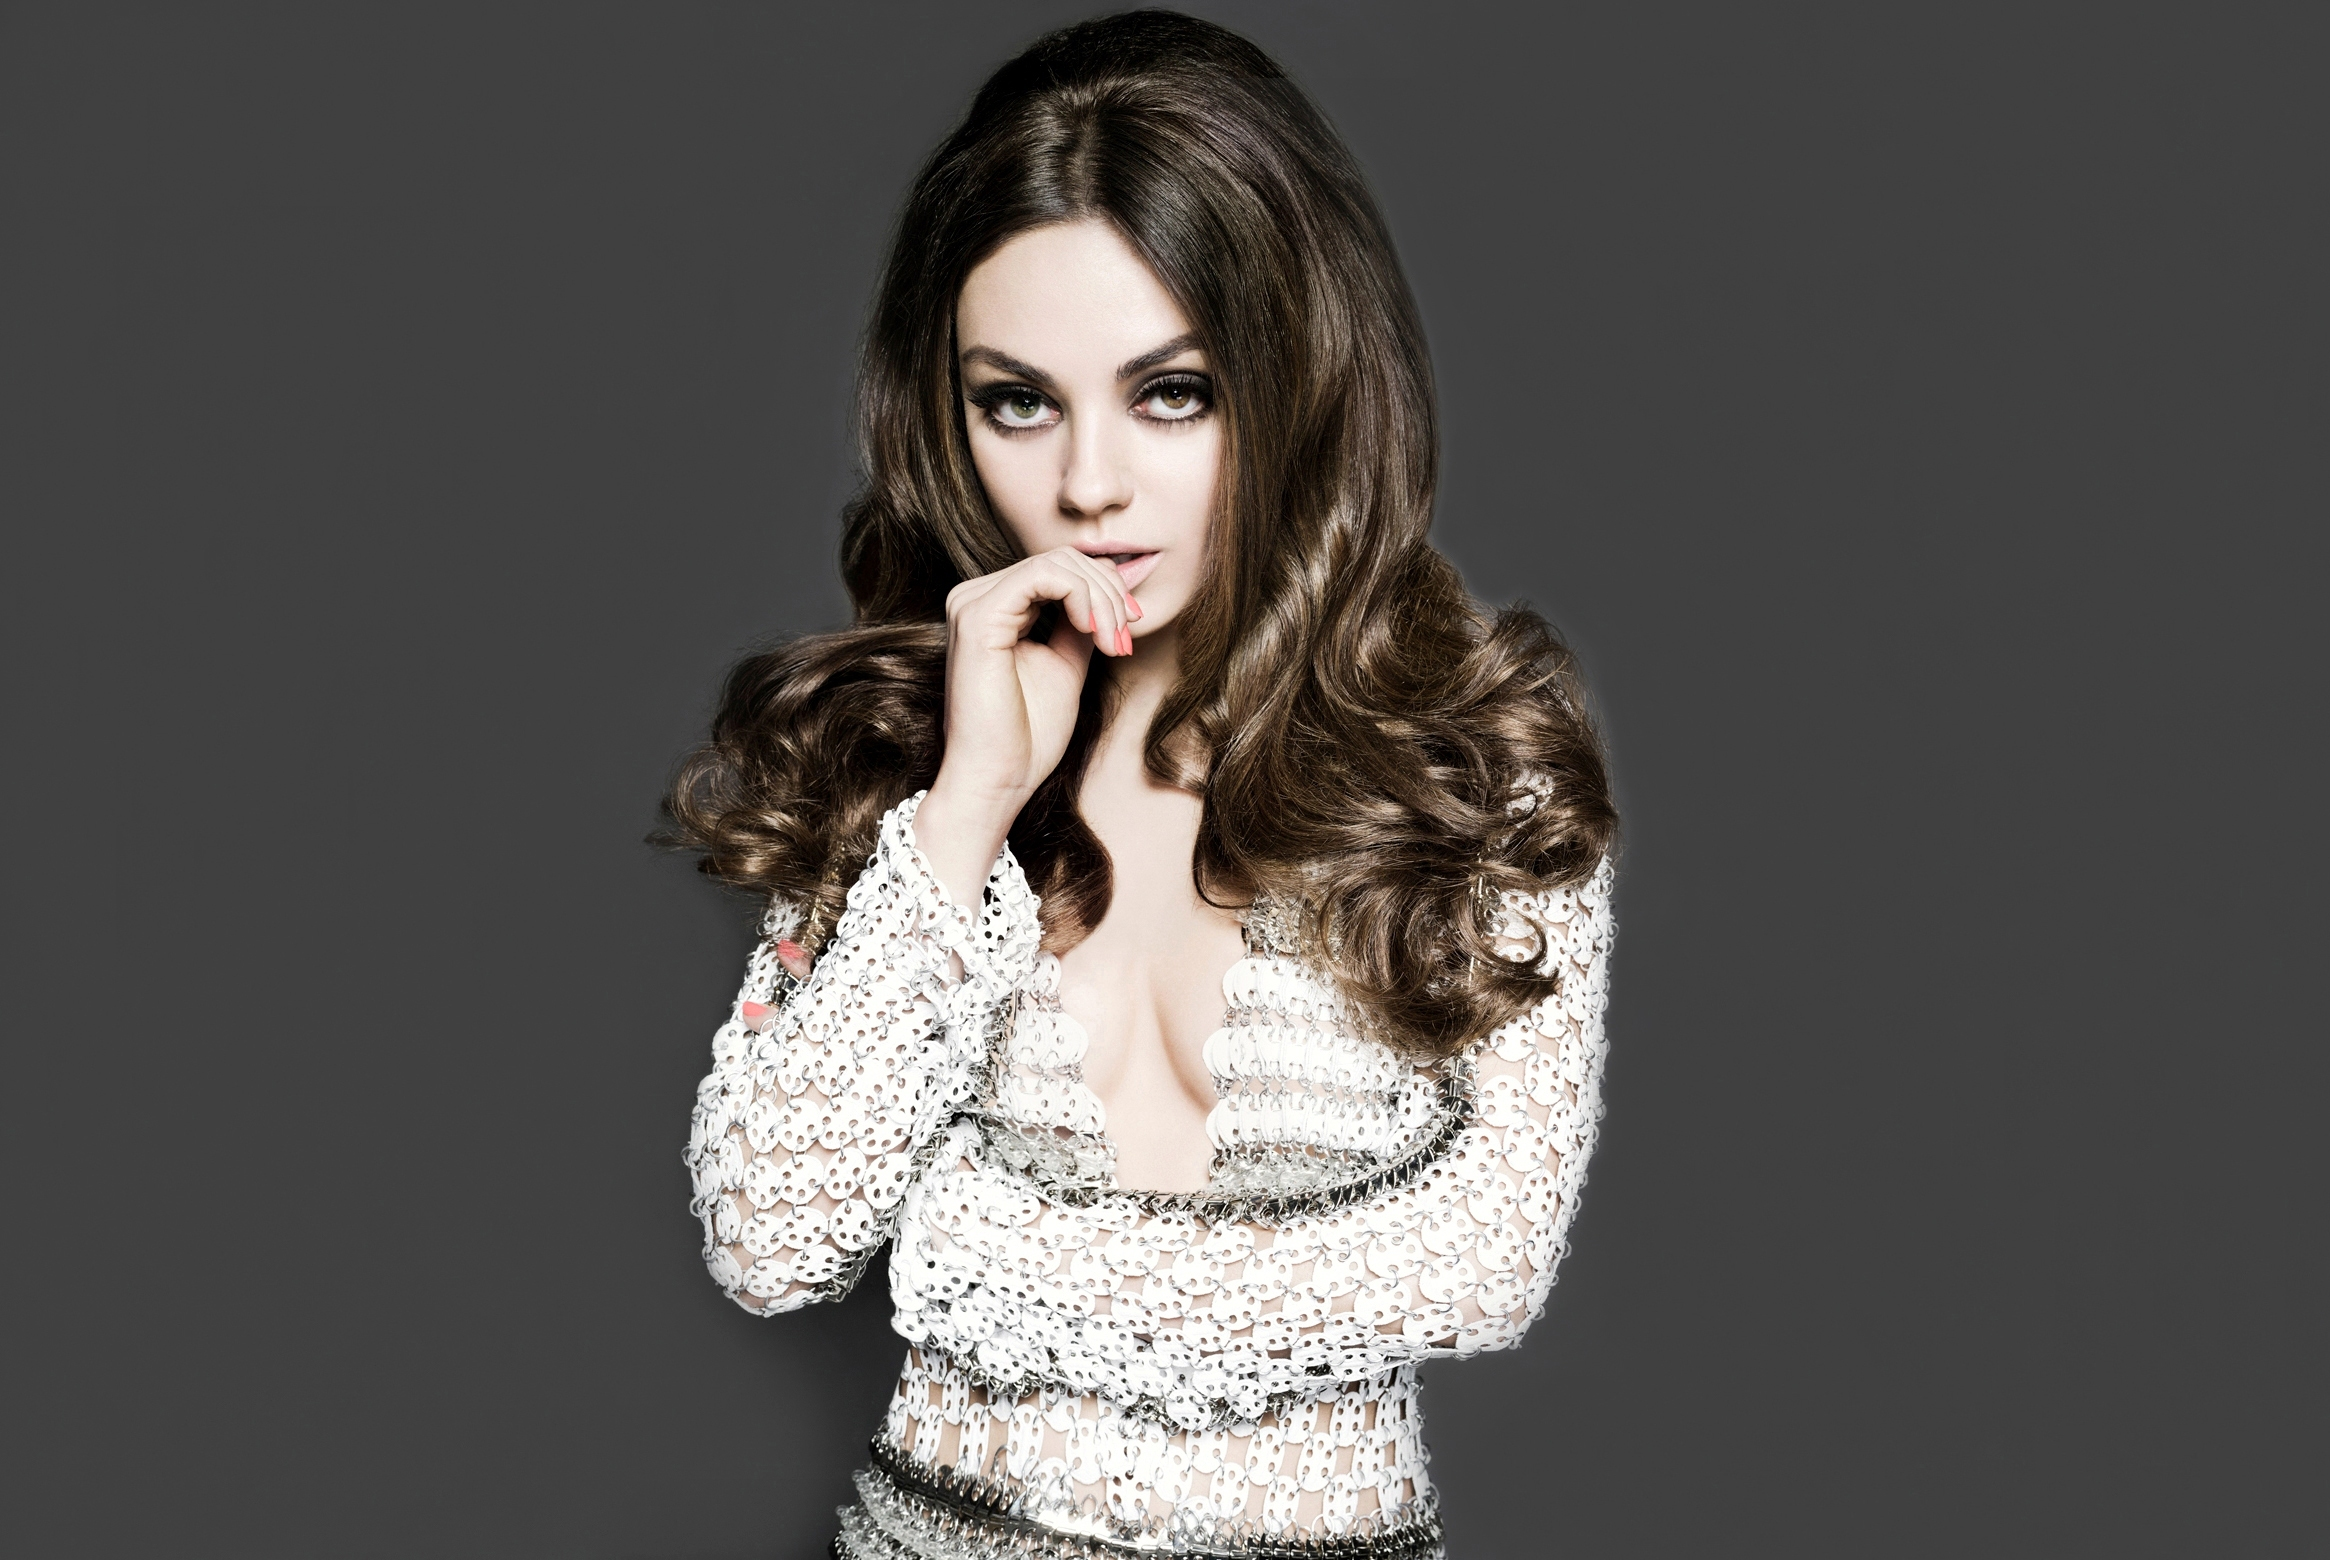 Mila Kunis Hollywood Famous Actress Pictures   All HD Wallpapers 2330x1560